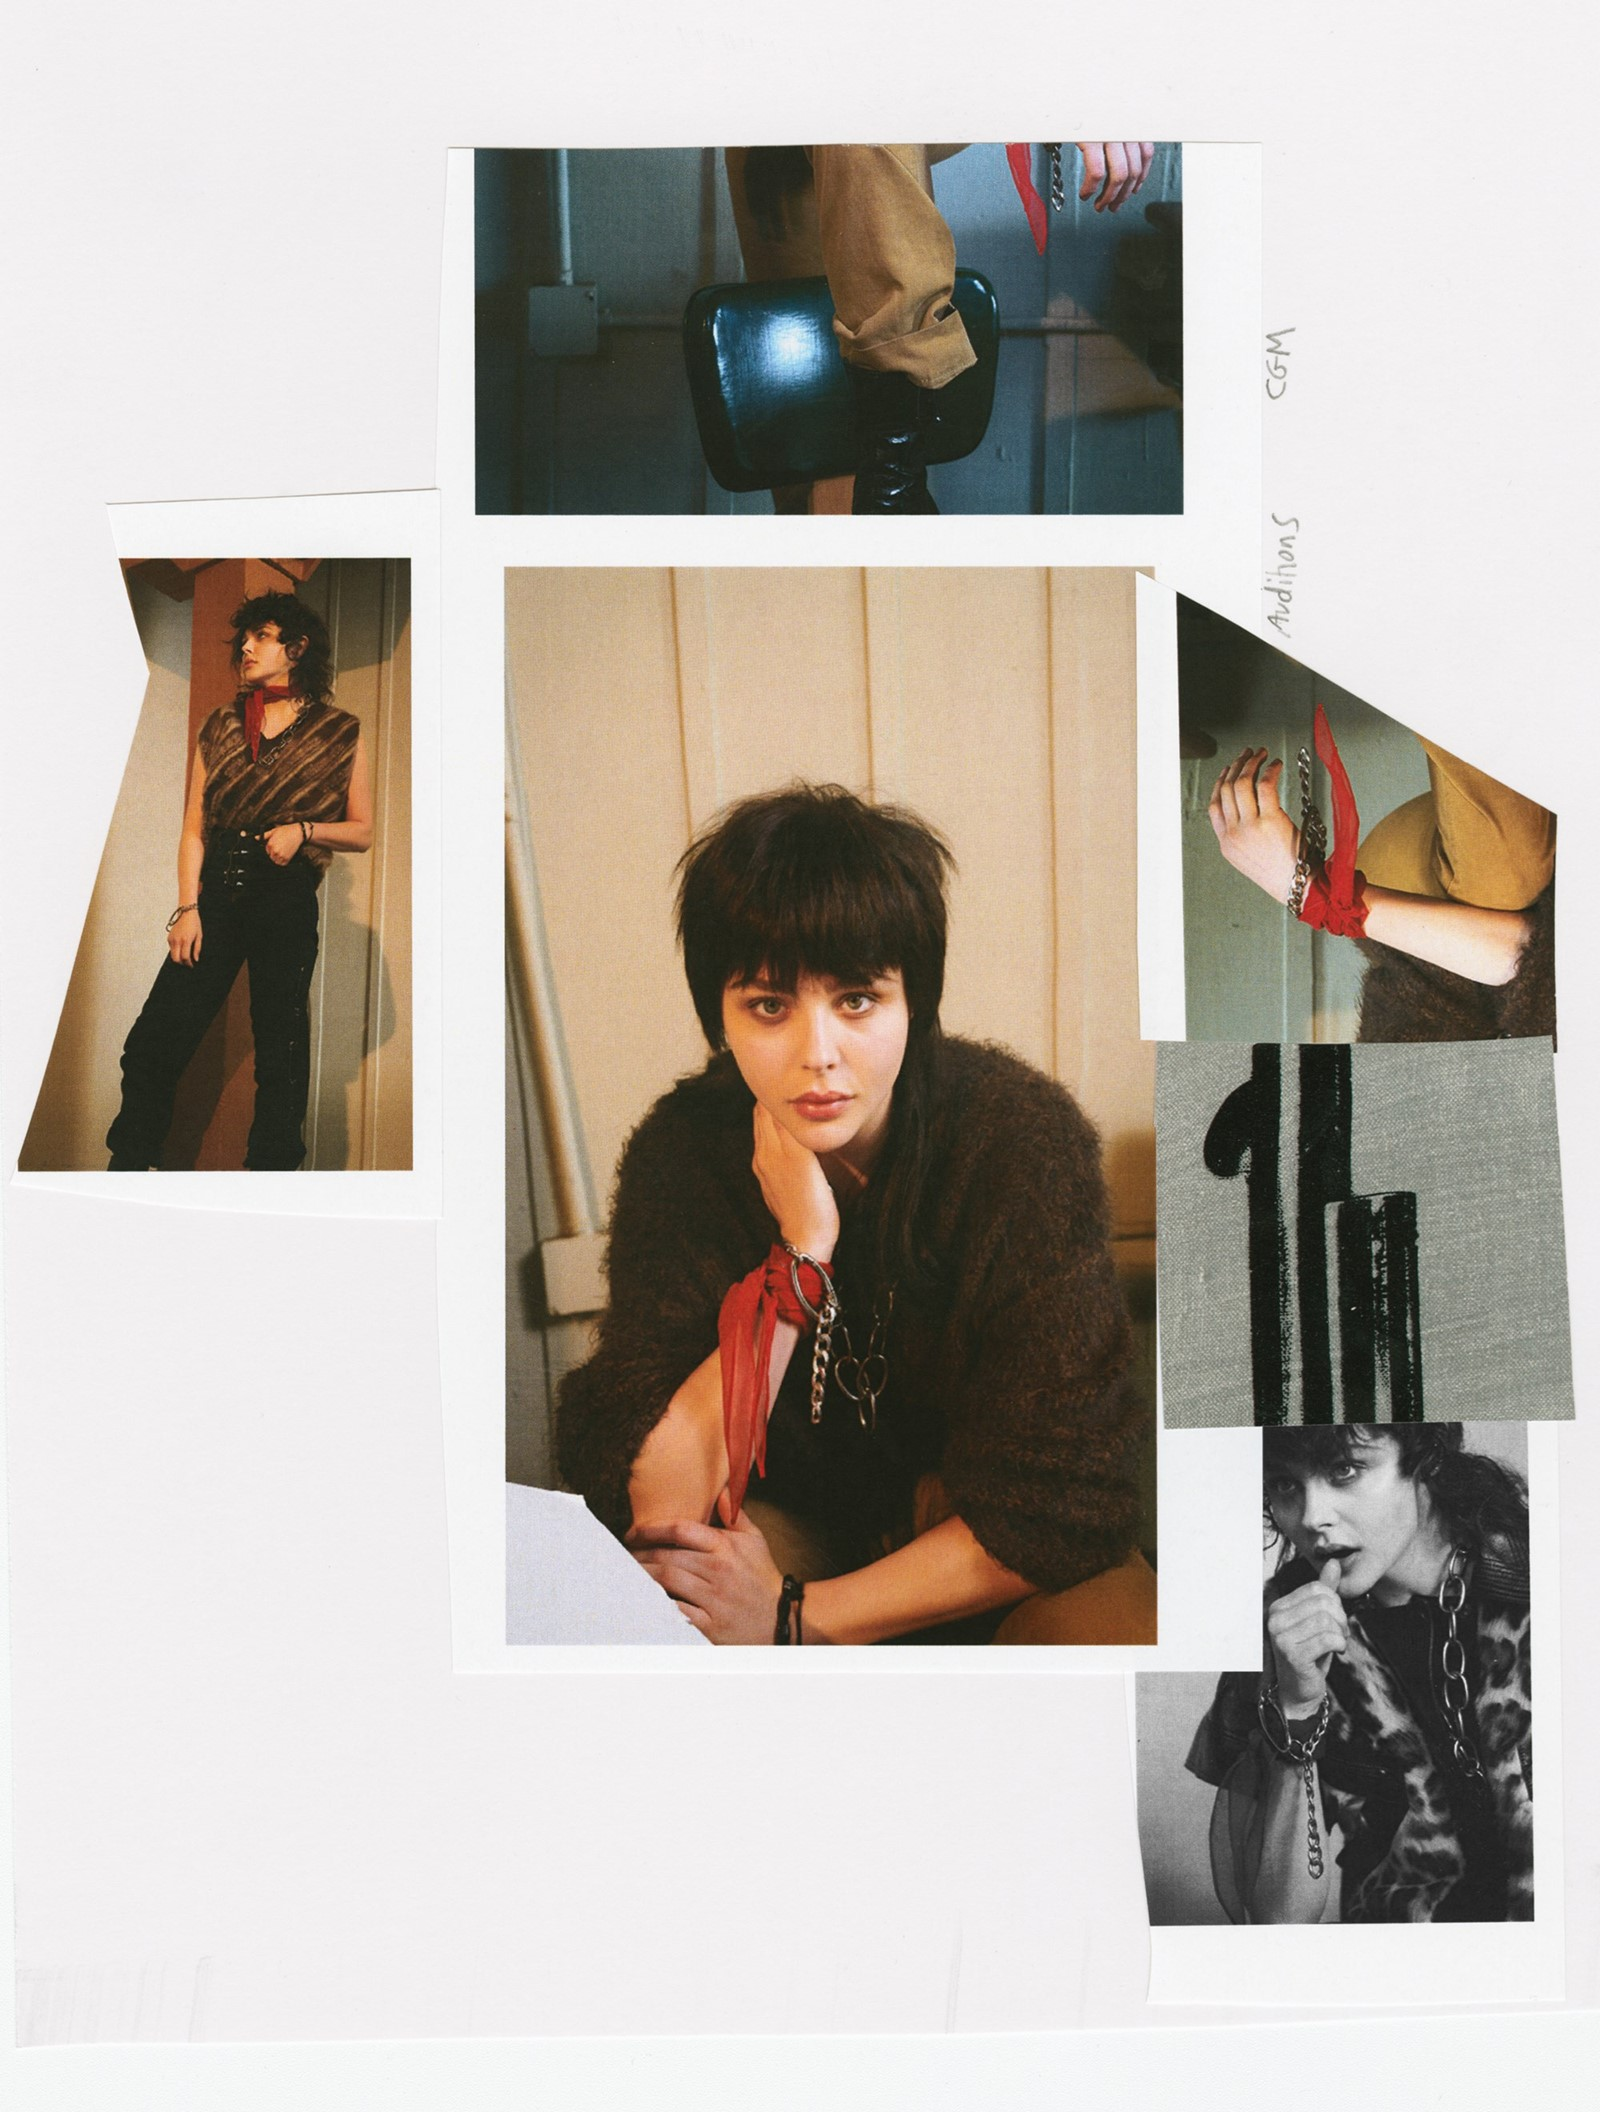 Photography by Collier Schorr, Styling by Katie Shillingford